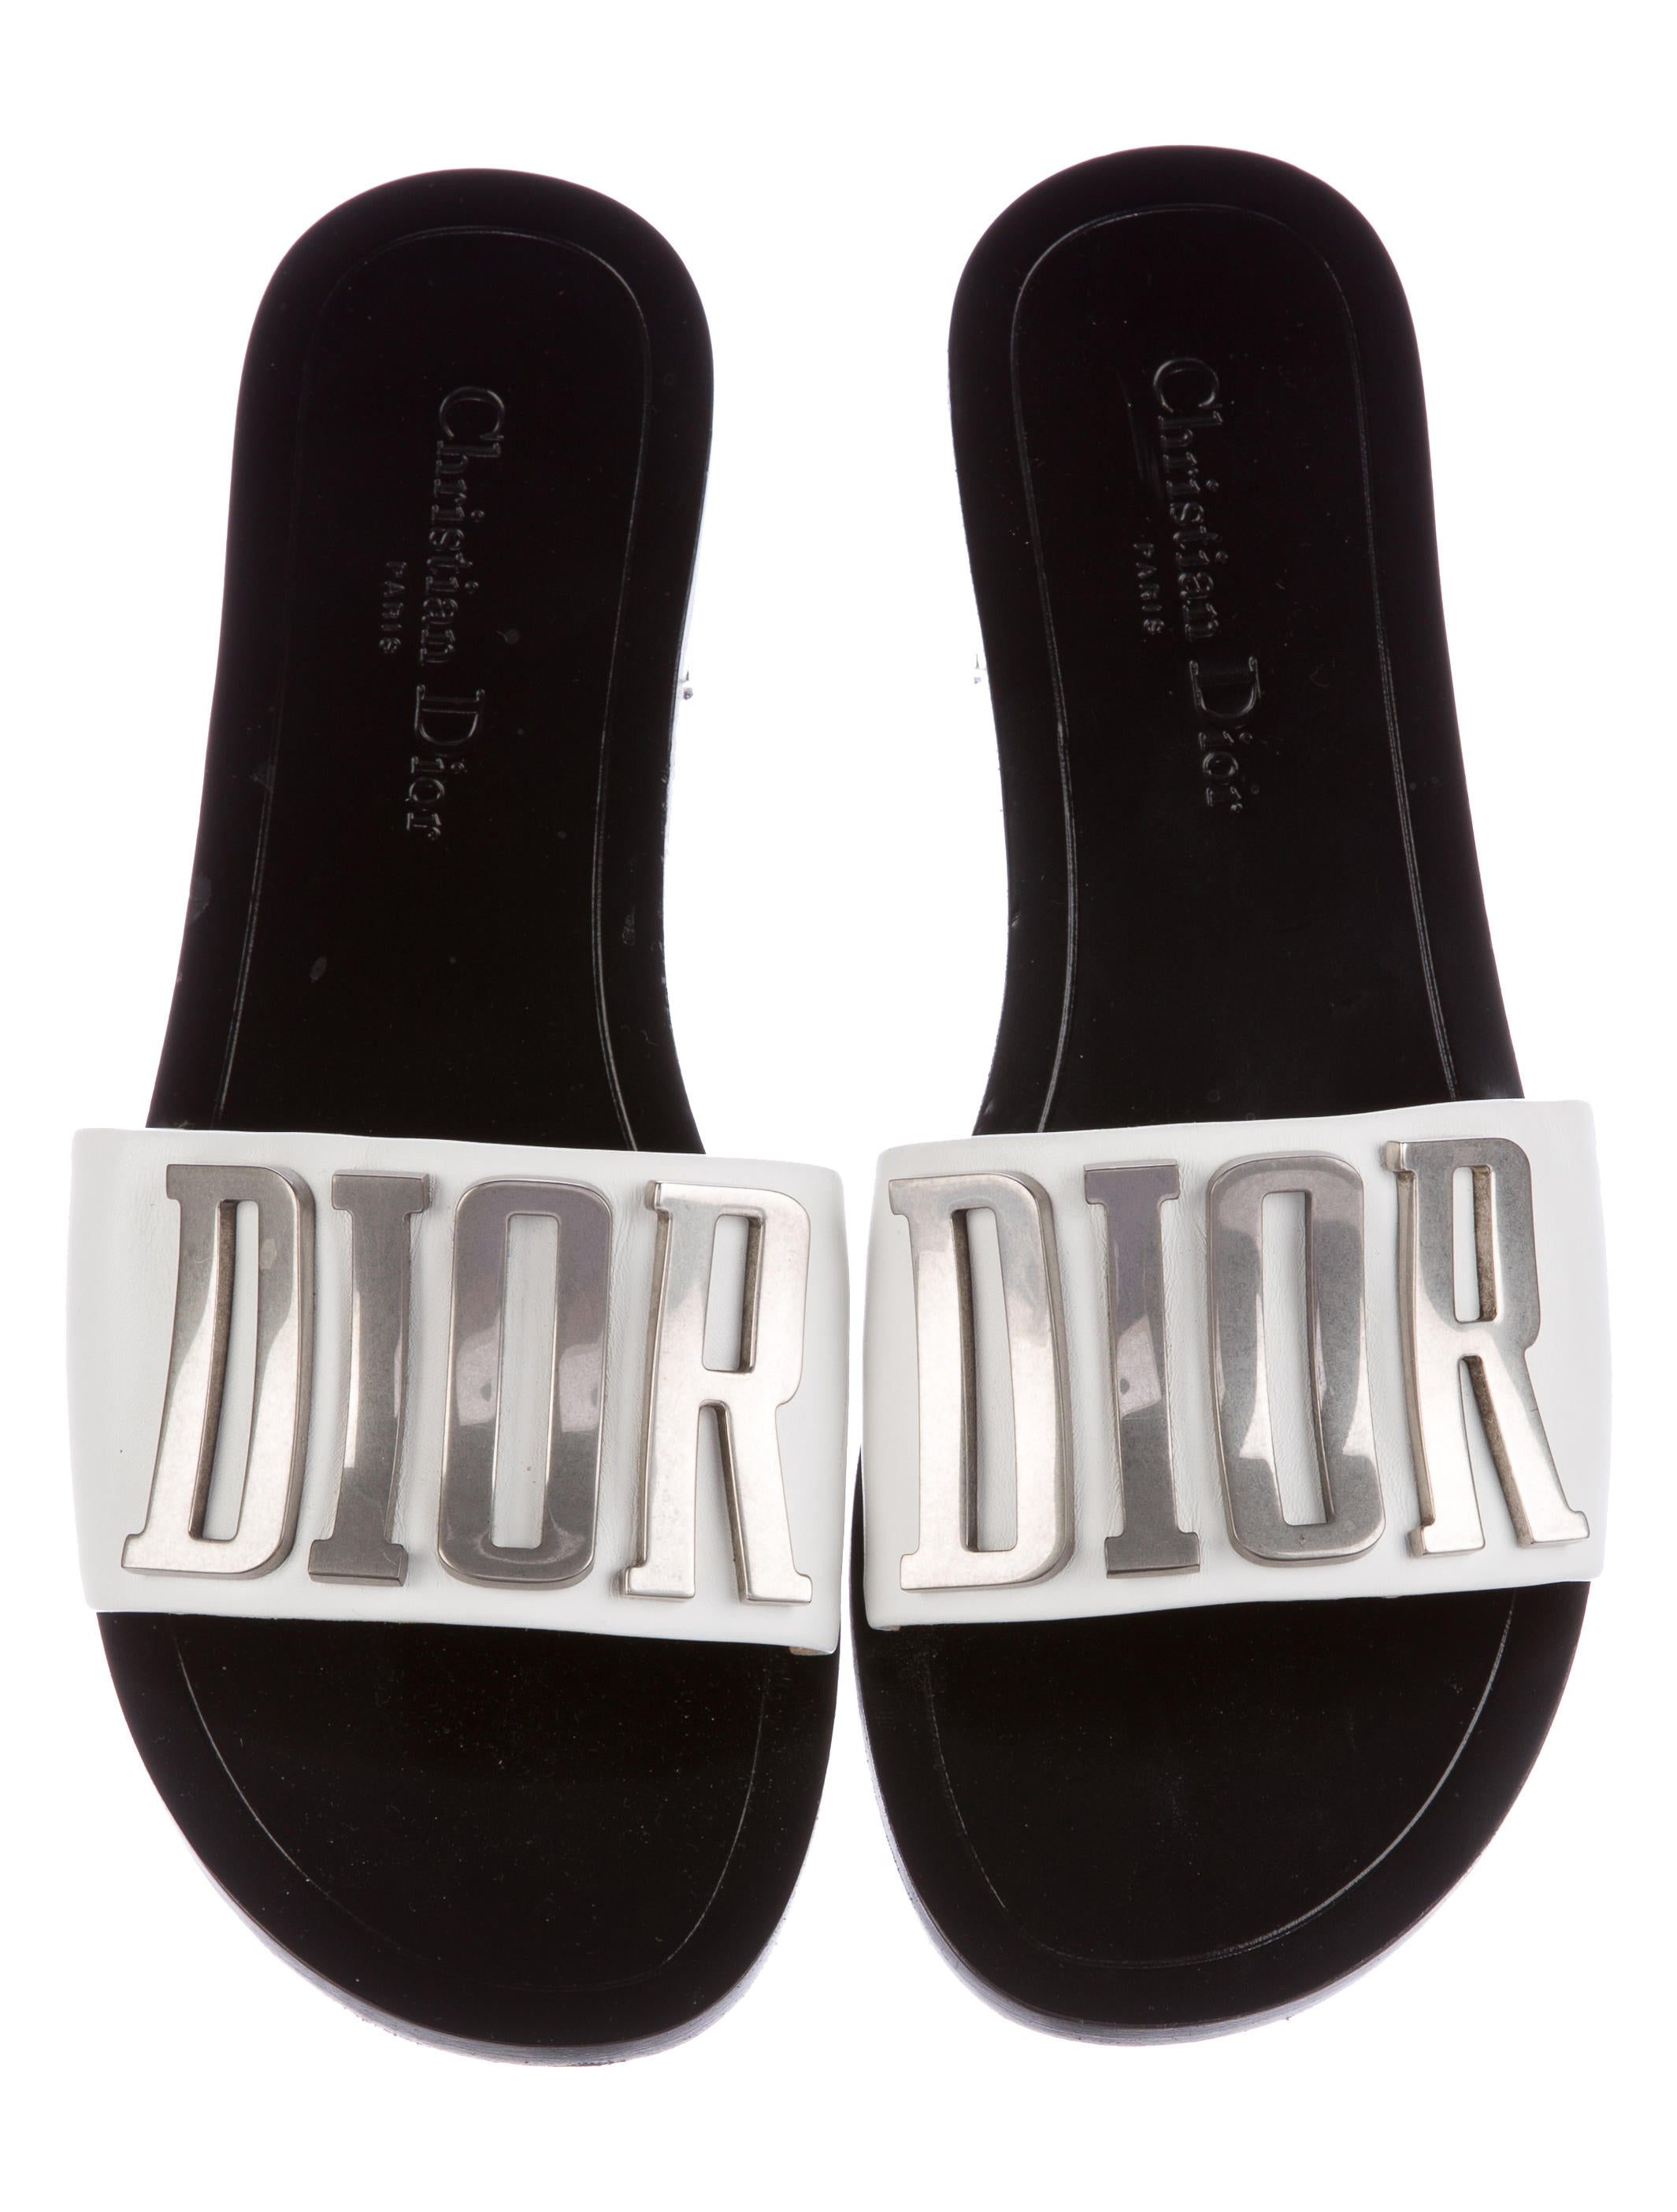 Christian Dior Summer 2017 Evolution Slide Sandals Shoes  : CHR523613enlarged from www.therealreal.com size 2129 x 2808 jpeg 304kB